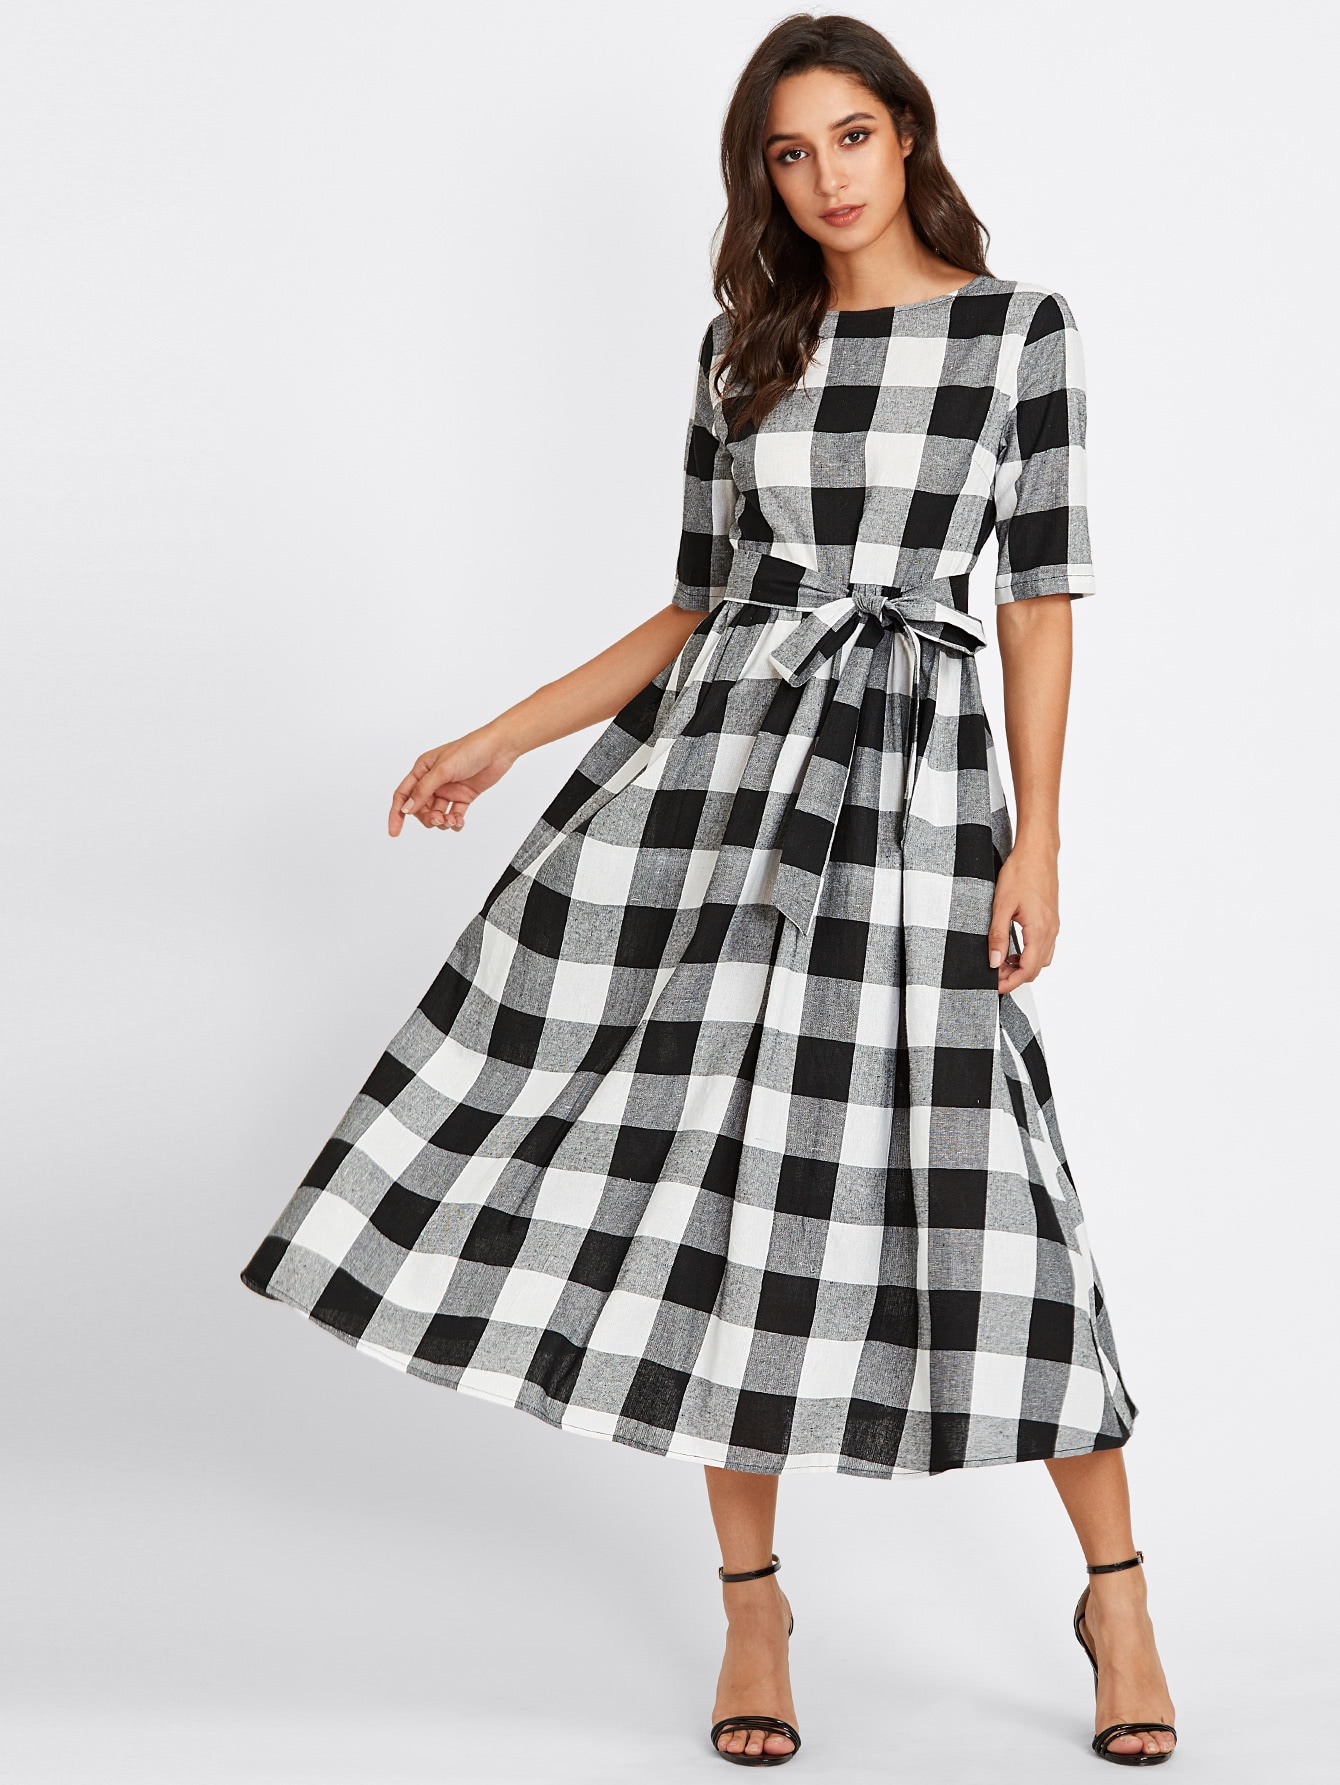 Buttoned Keyhole Self Tie Checkered Dress -SheIn(Sheinside)